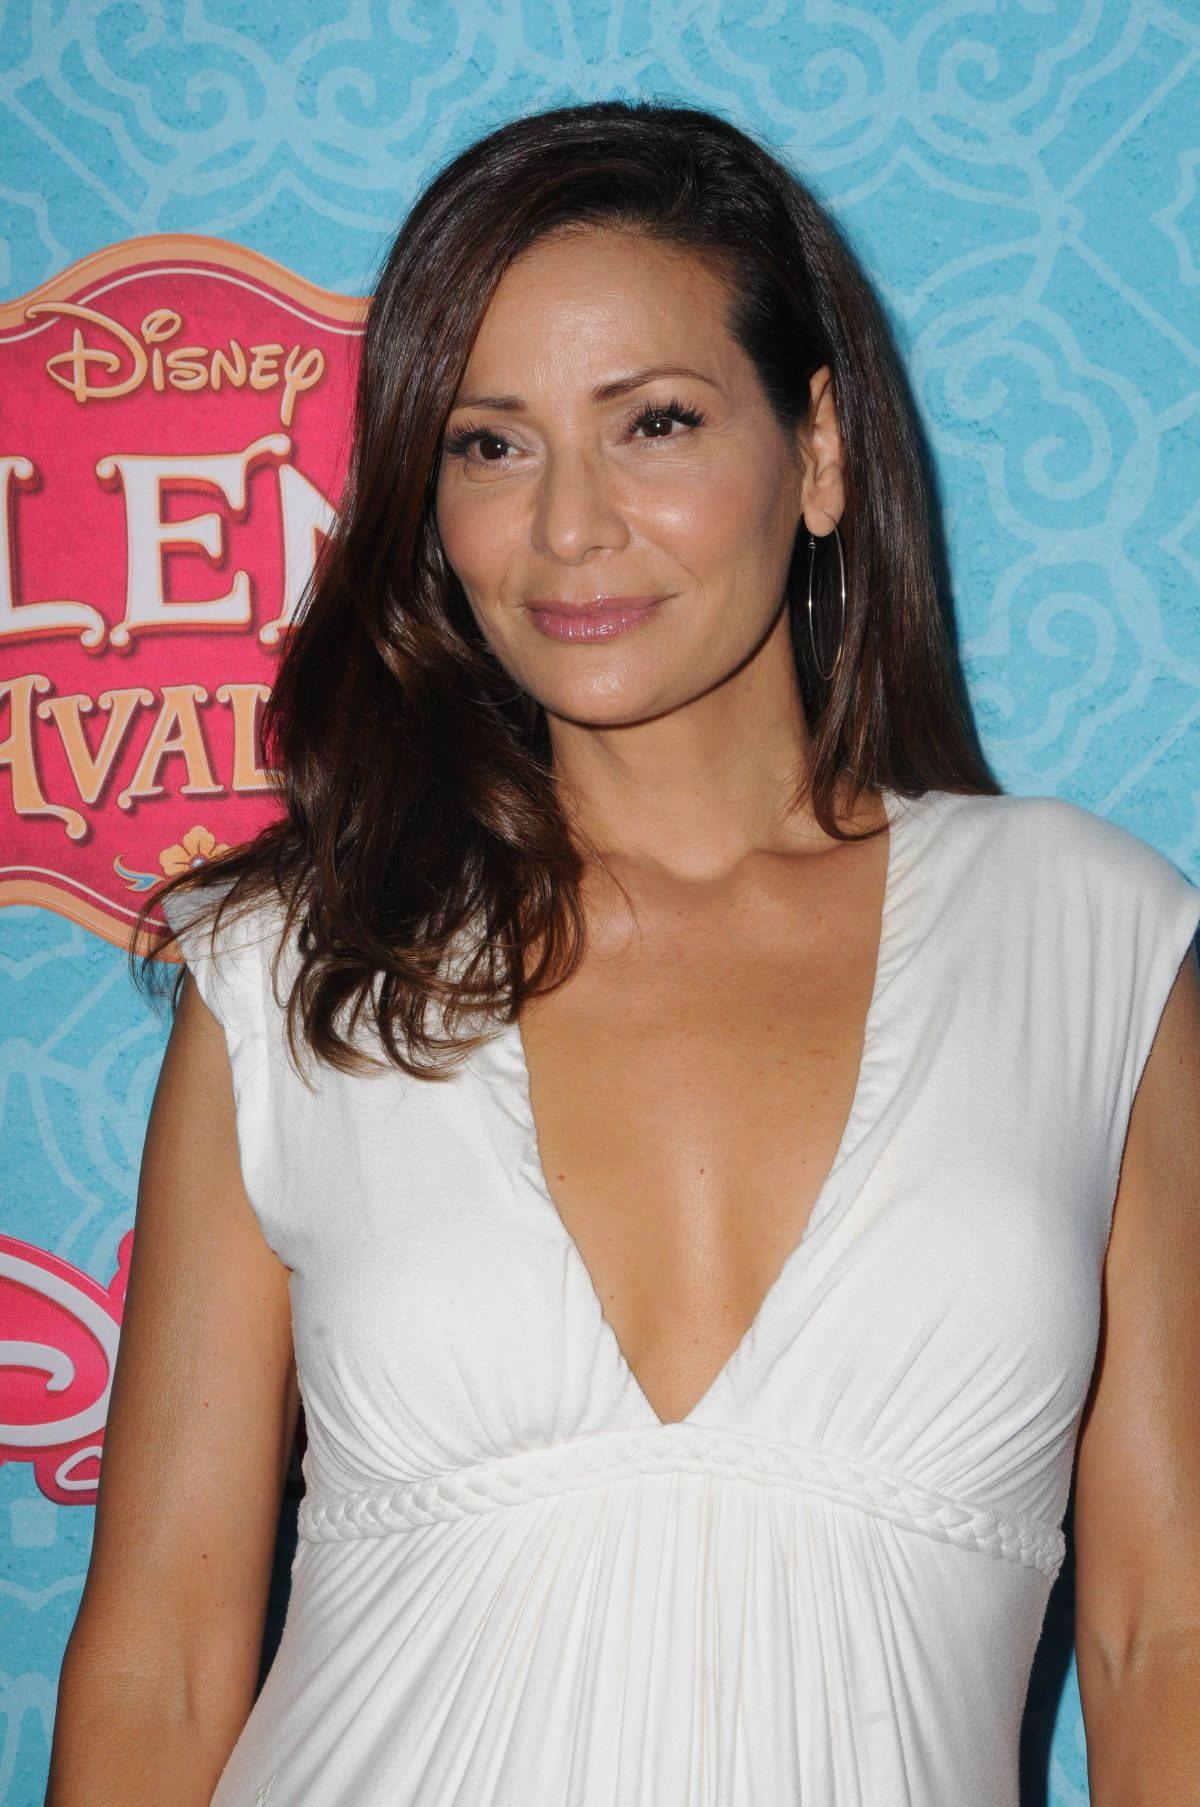 CONSTANCE MARIE at 'Elena of Avalor' VIP Screening in Beverly Hills 07/16/2016